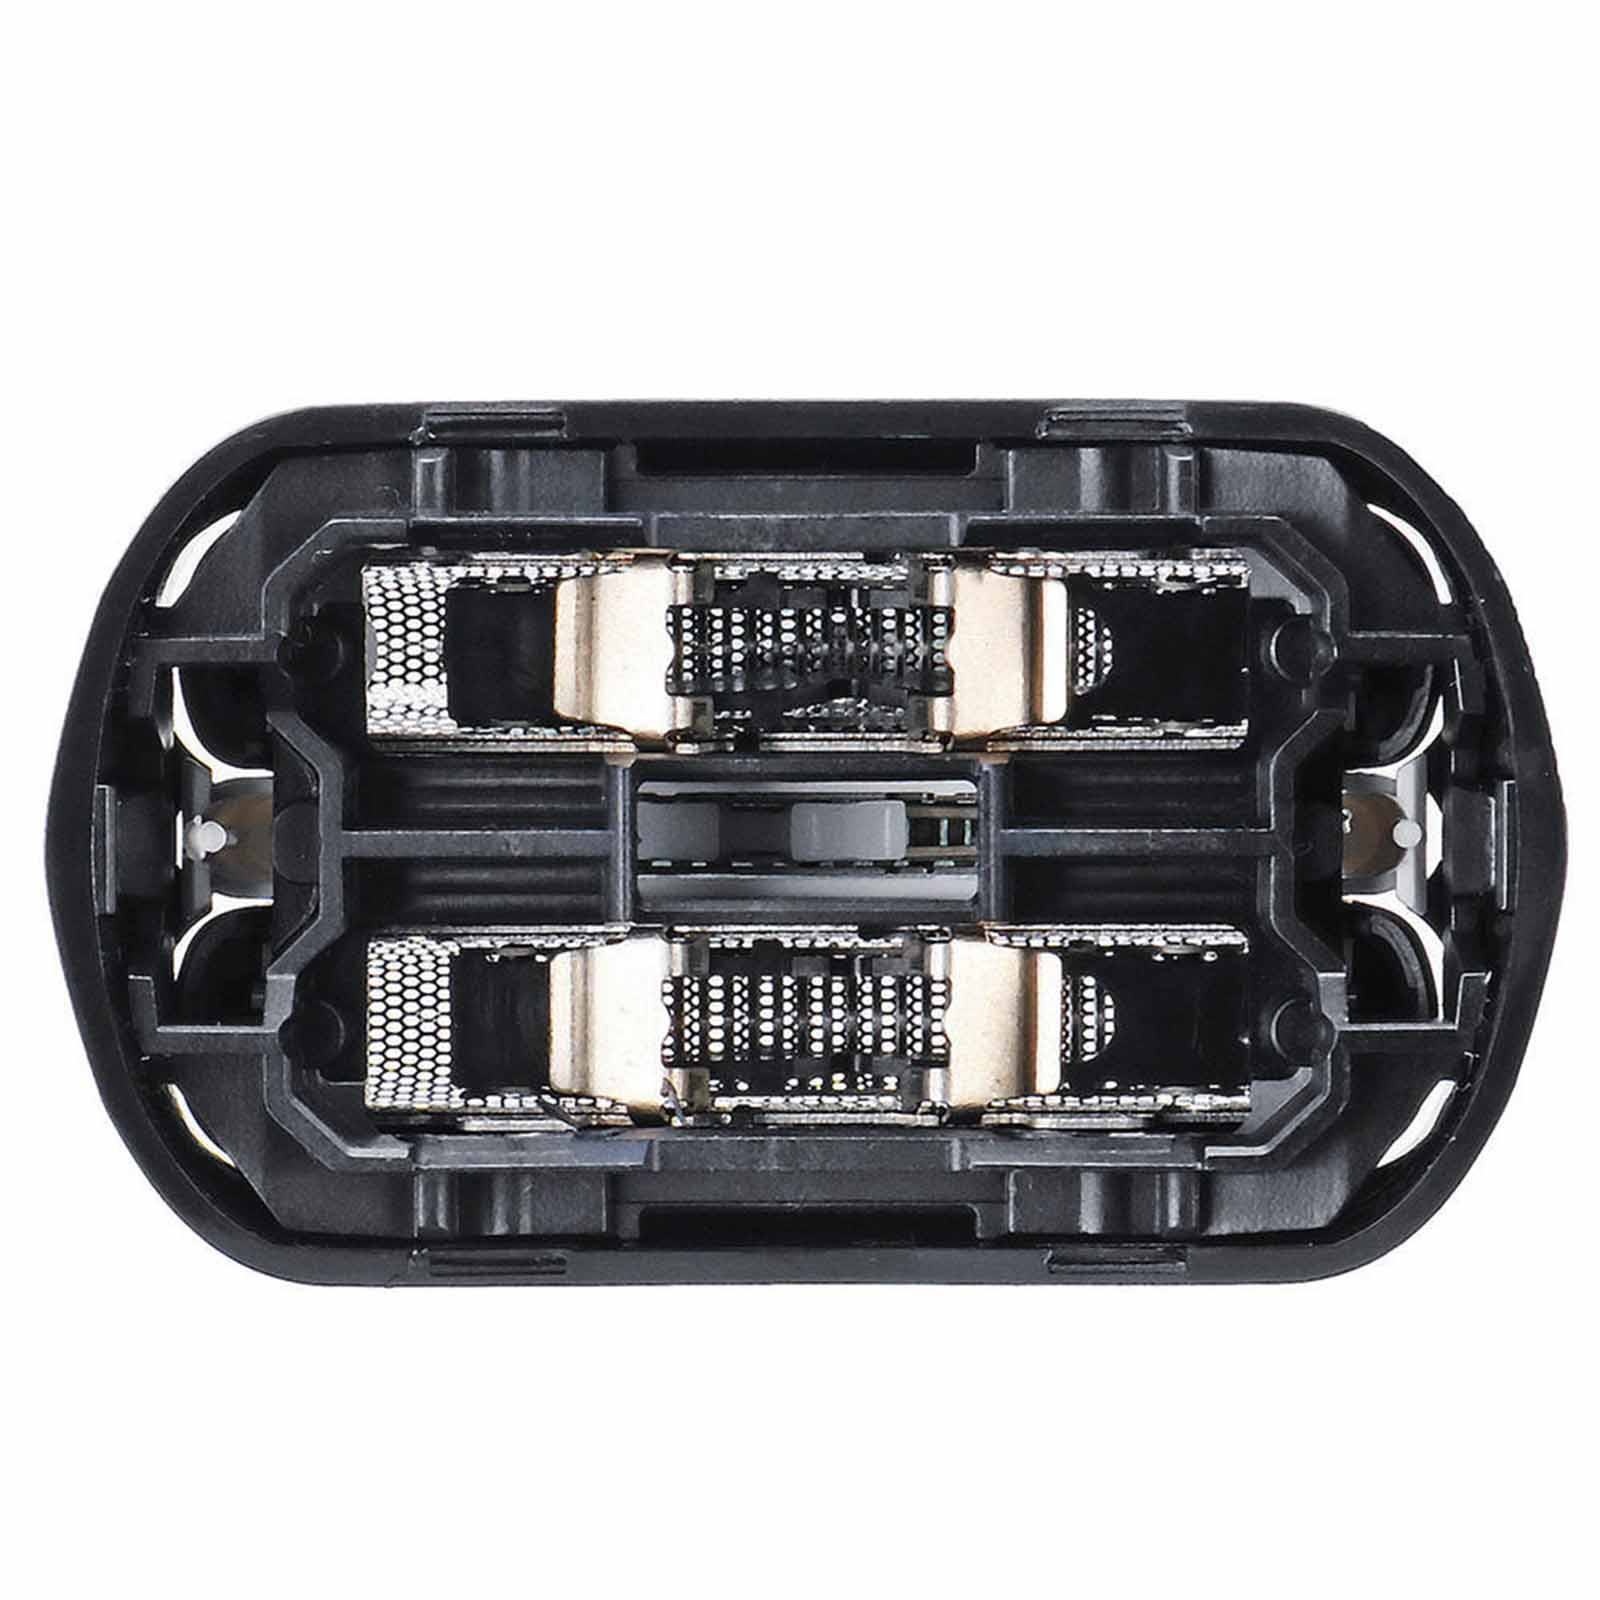 Image 4 - For Braun Electric Shaver Head Accessories Foil Cutter Head Cassette 32B 32S for Braun Electric Razor Shaver Series 3 320 330-in Personal Care Appliance Parts from Home Appliances